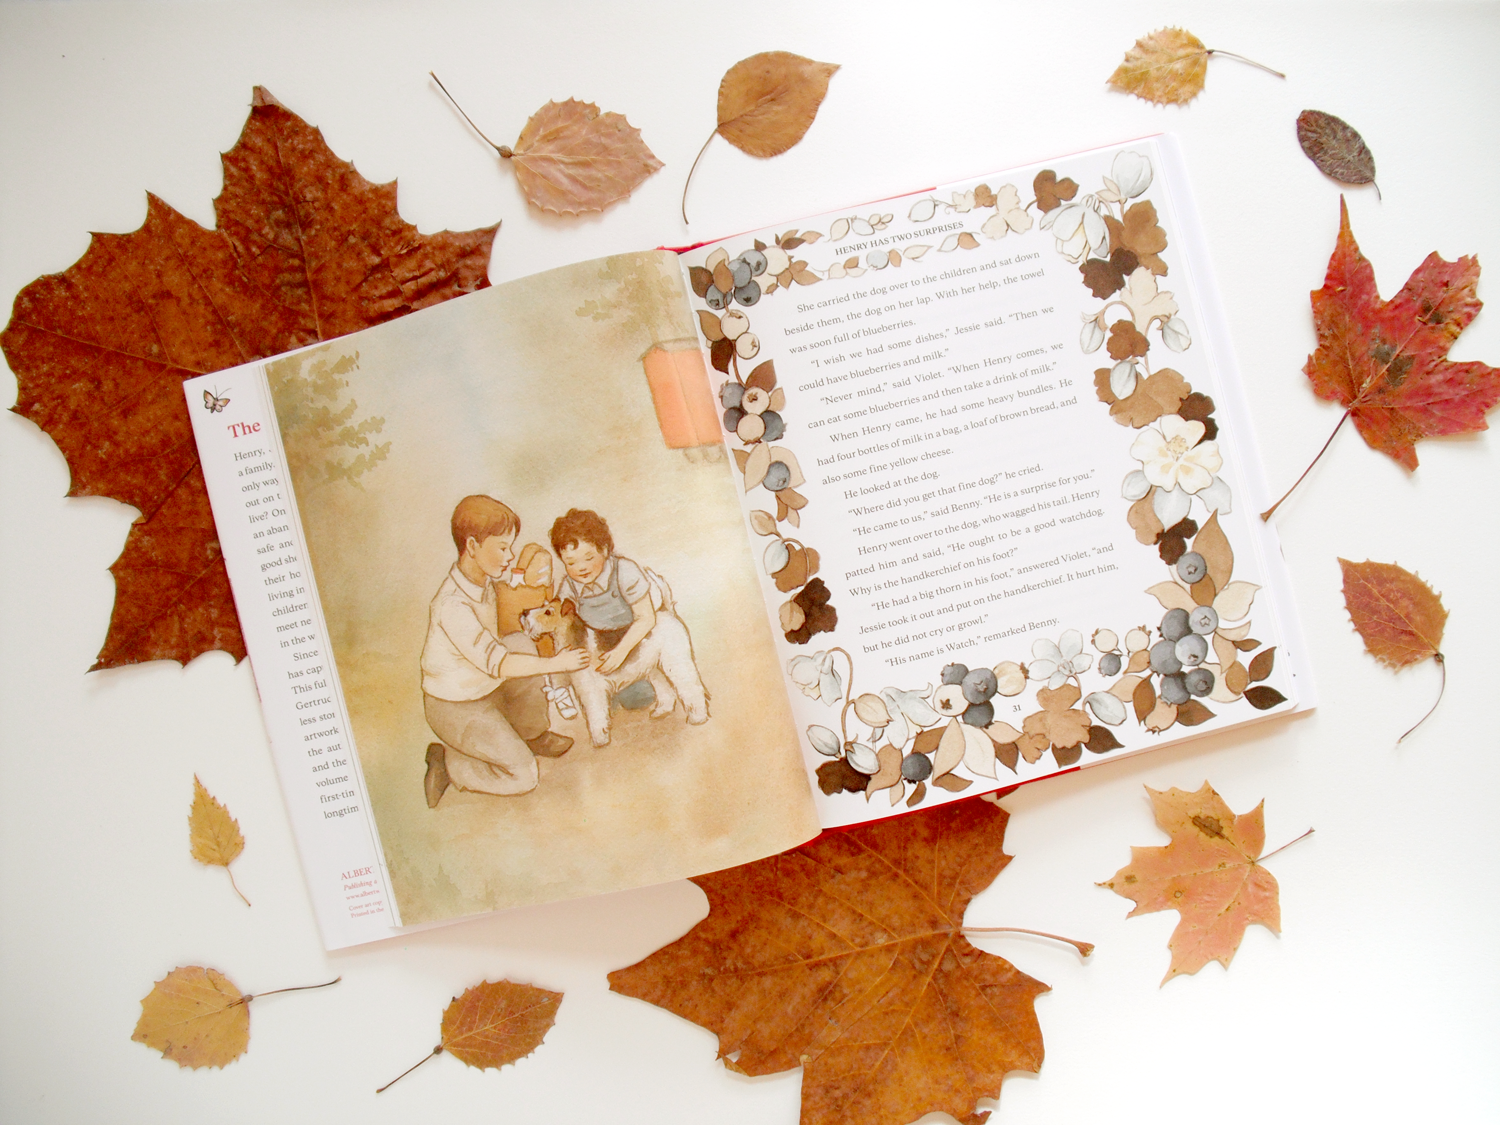 the-boxcar-children-book-release1.png